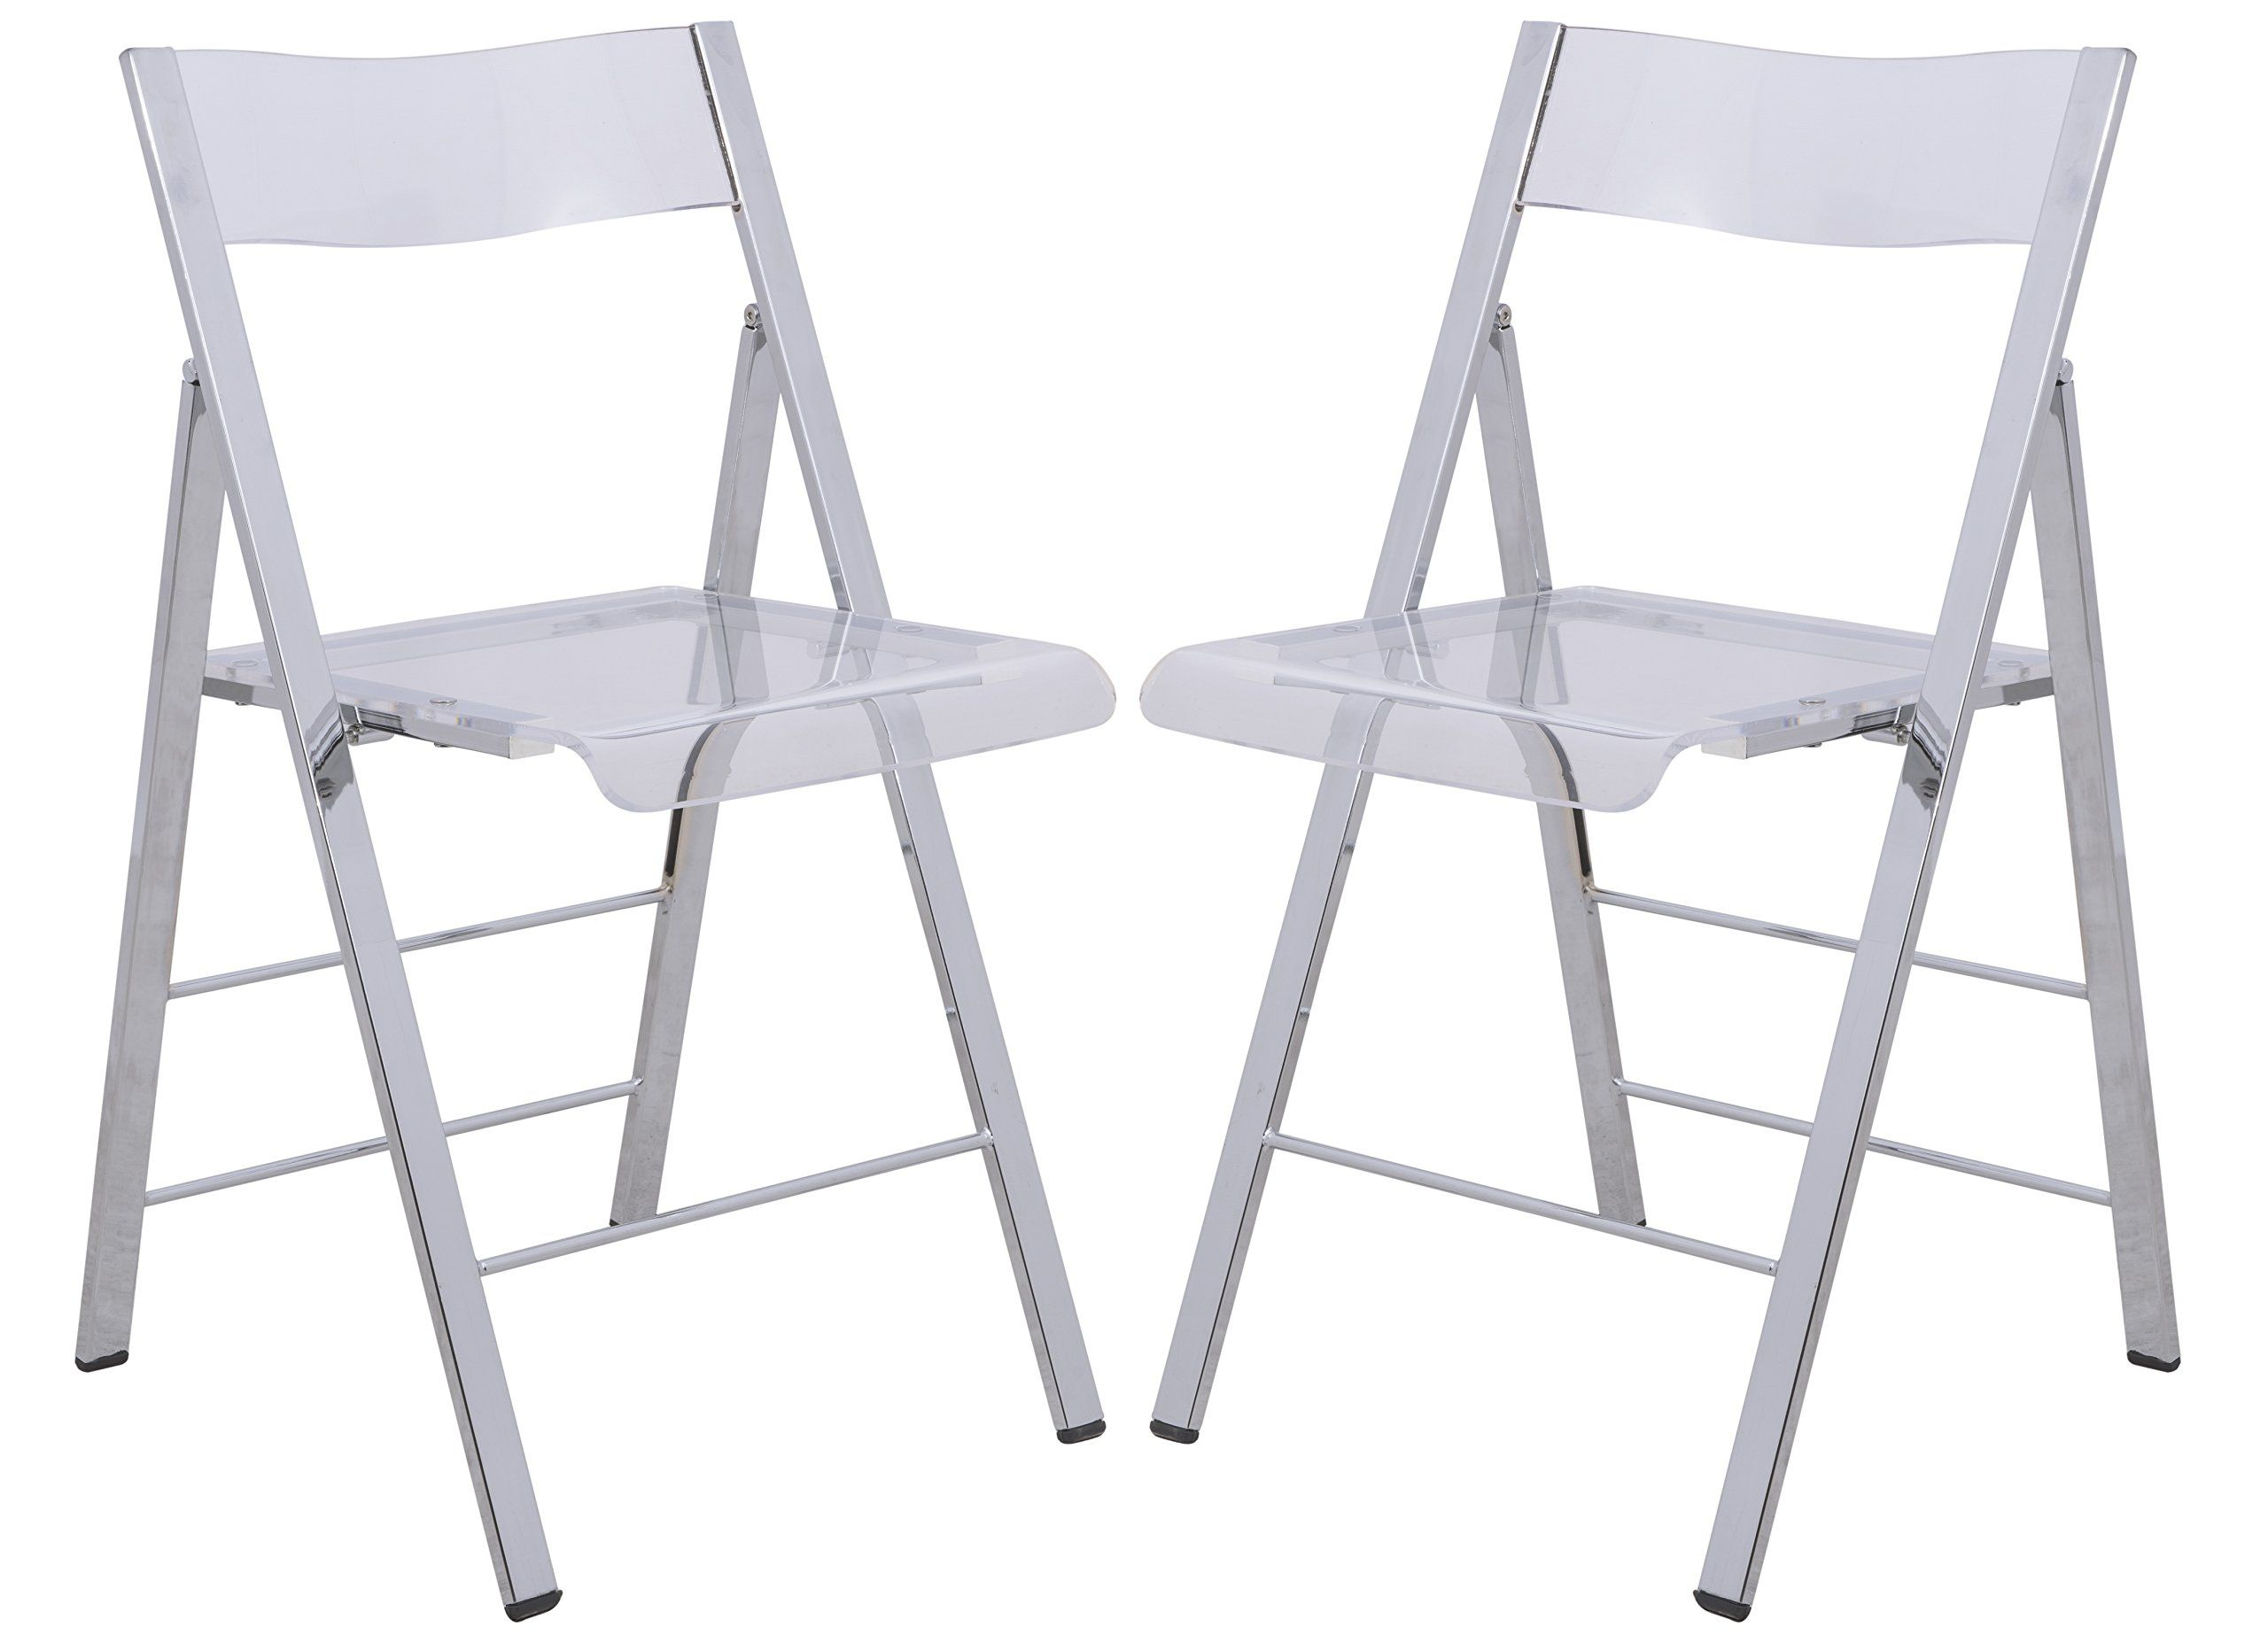 clear acrylic furniture. LeisureMod Menno Modern Acrylic Folding Chairs, Set Of 2 (Clear) Clear Furniture 7